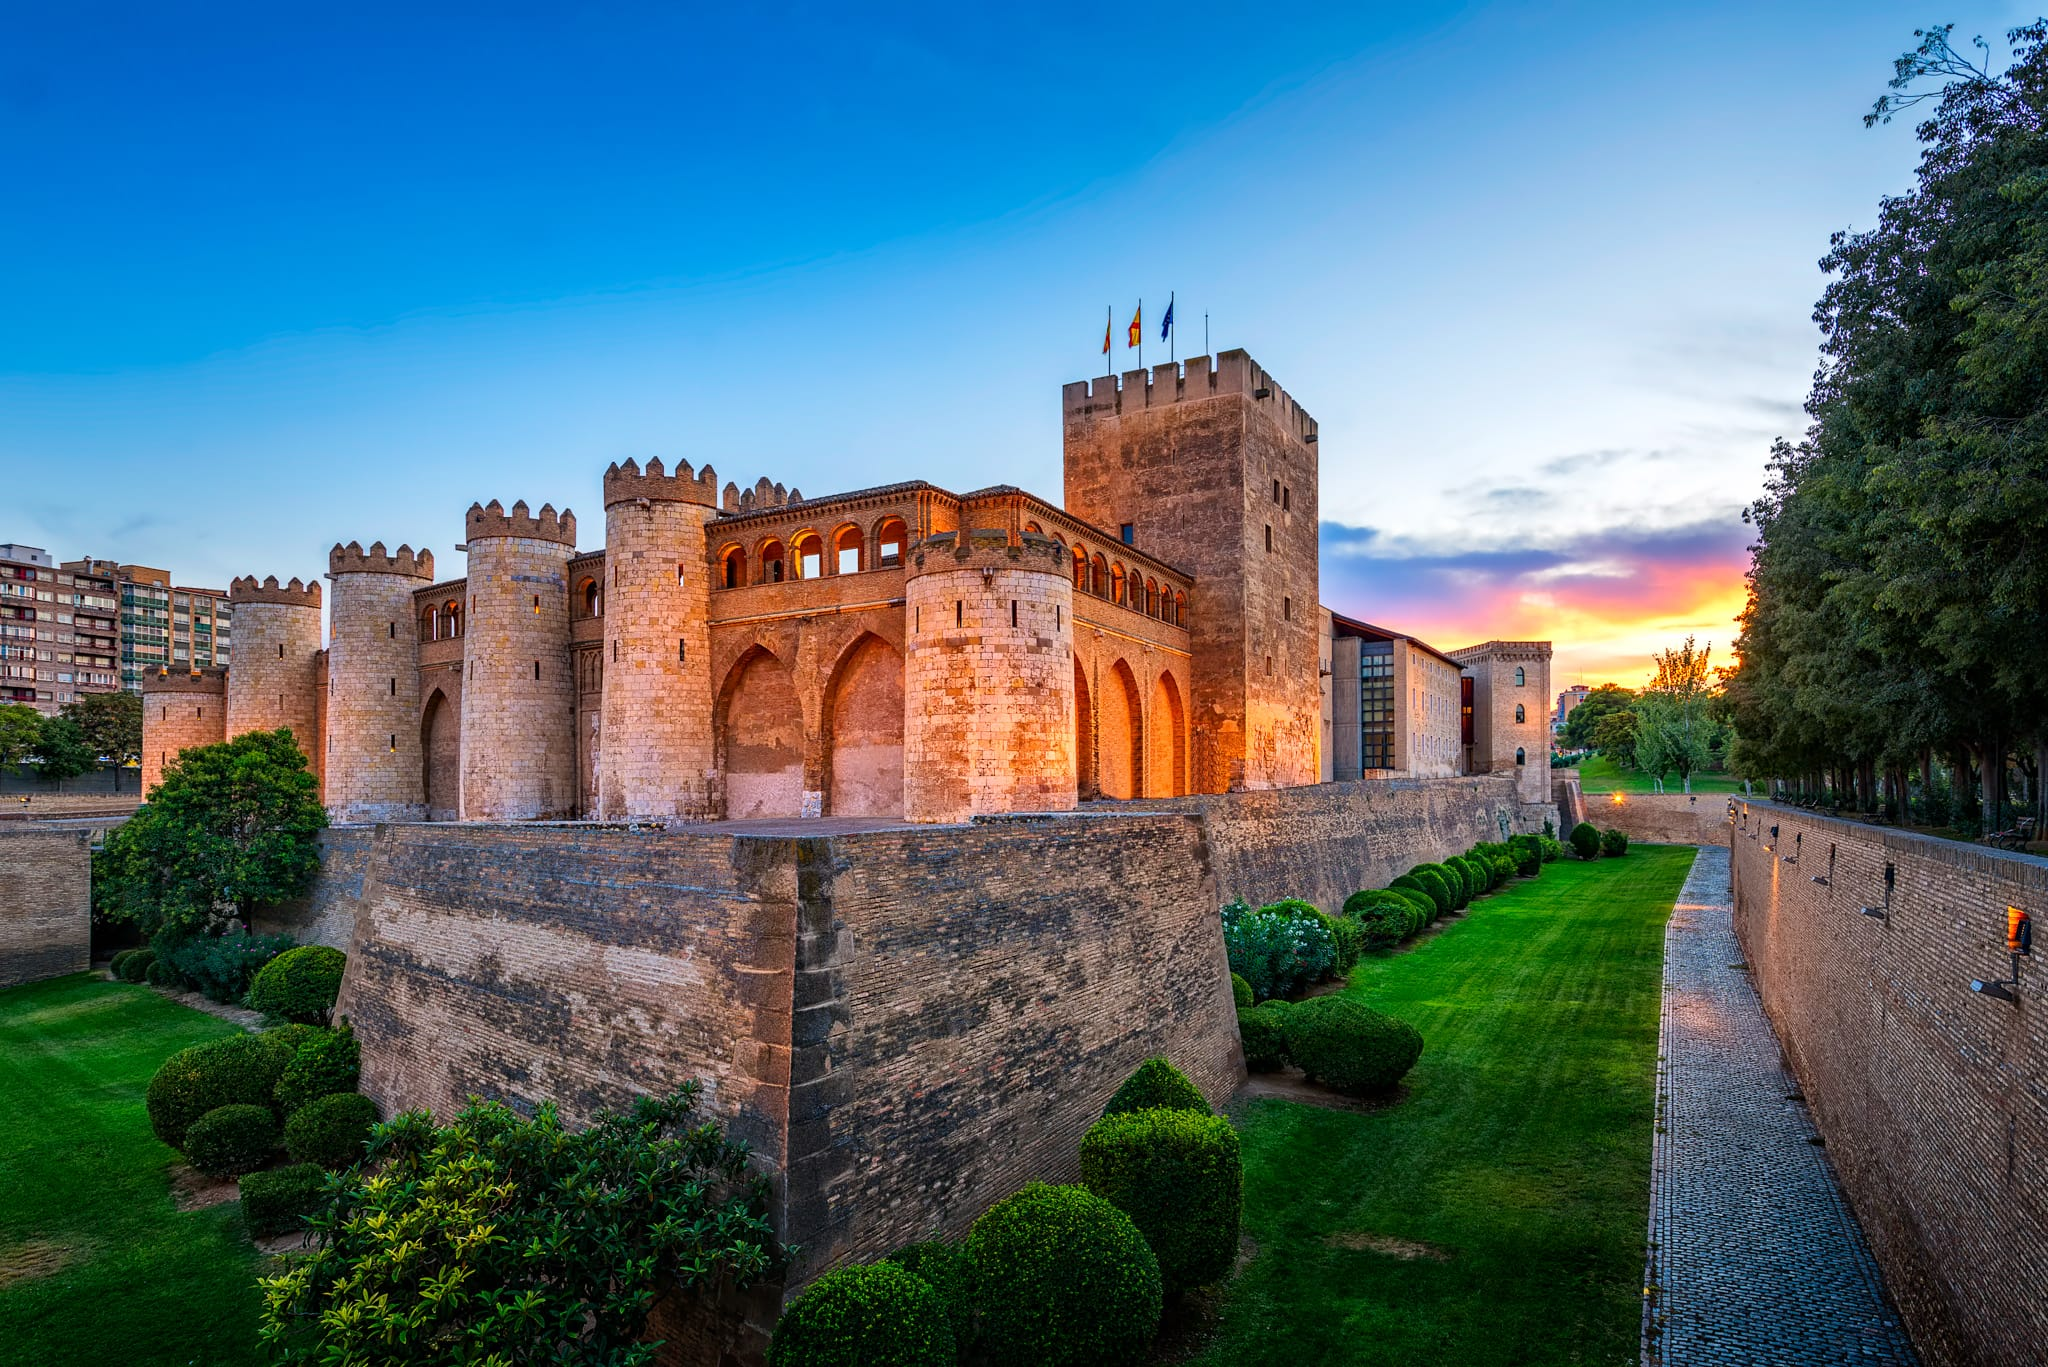 The Aljafería Palace in Zaragoza | Spain